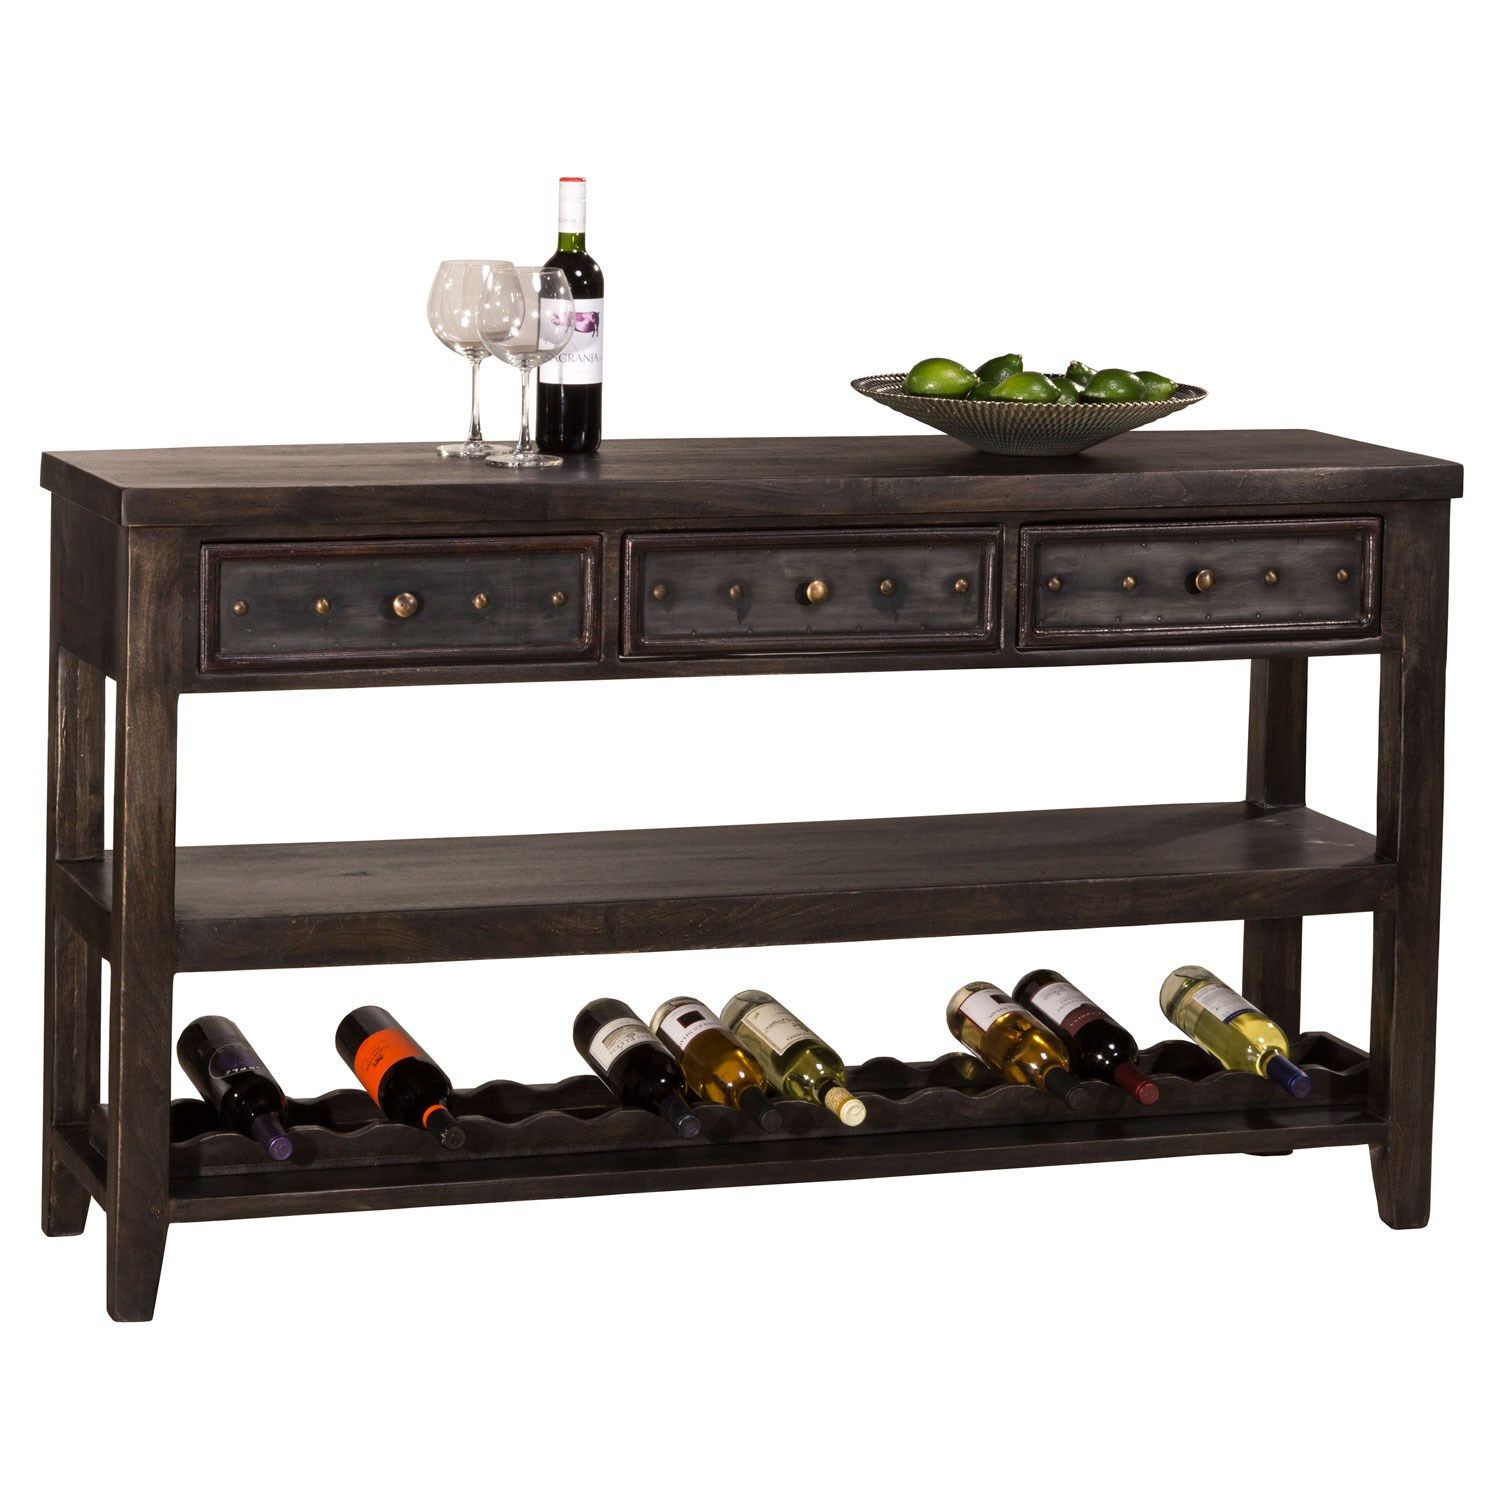 Hillsdale Furniture 5805 871 Bolt Sofa Table With Wine Rack Home